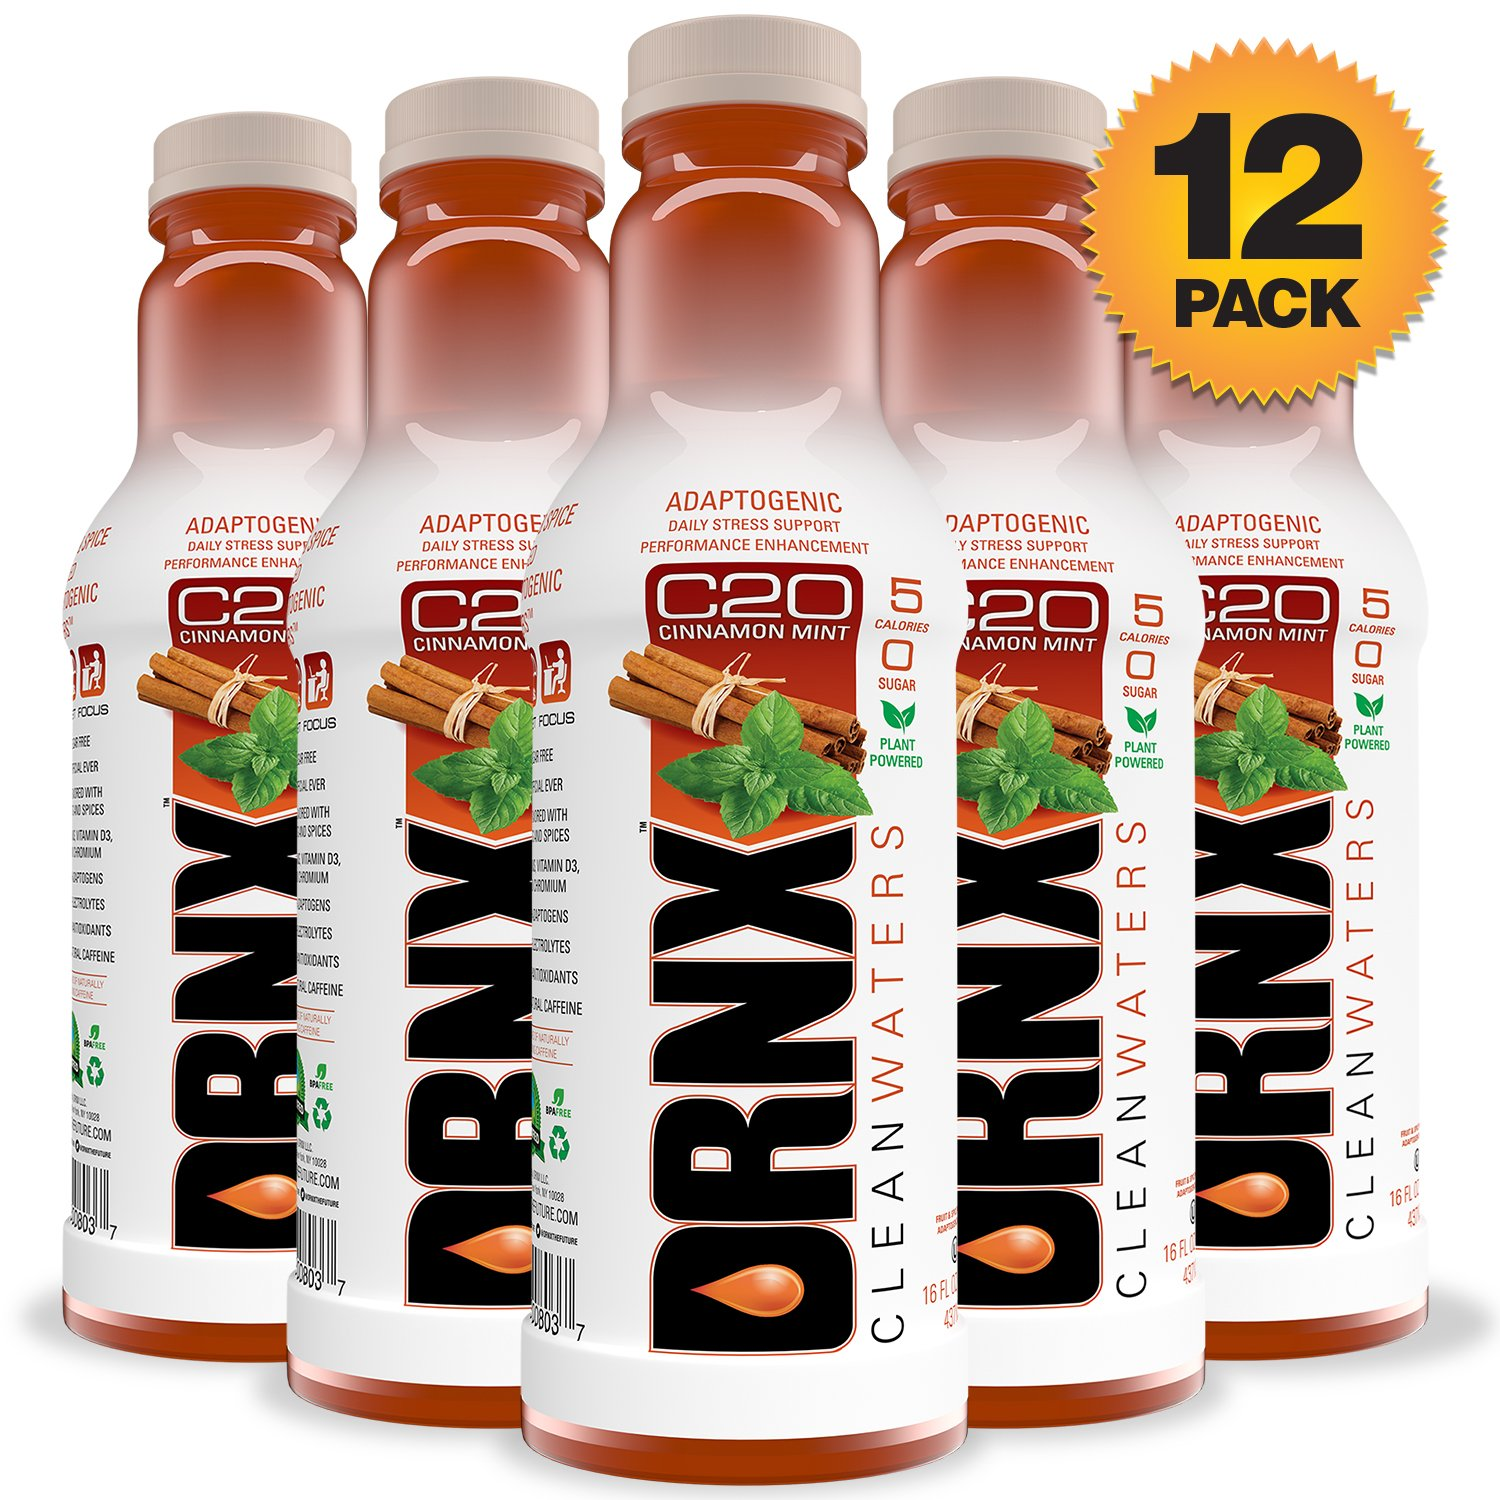 DRNX Sugar Free Fruit and Spice Infused Adaptogenic Water, Cinnamon Mint - 16 Fluid Ounce Bottles, 12 Pack